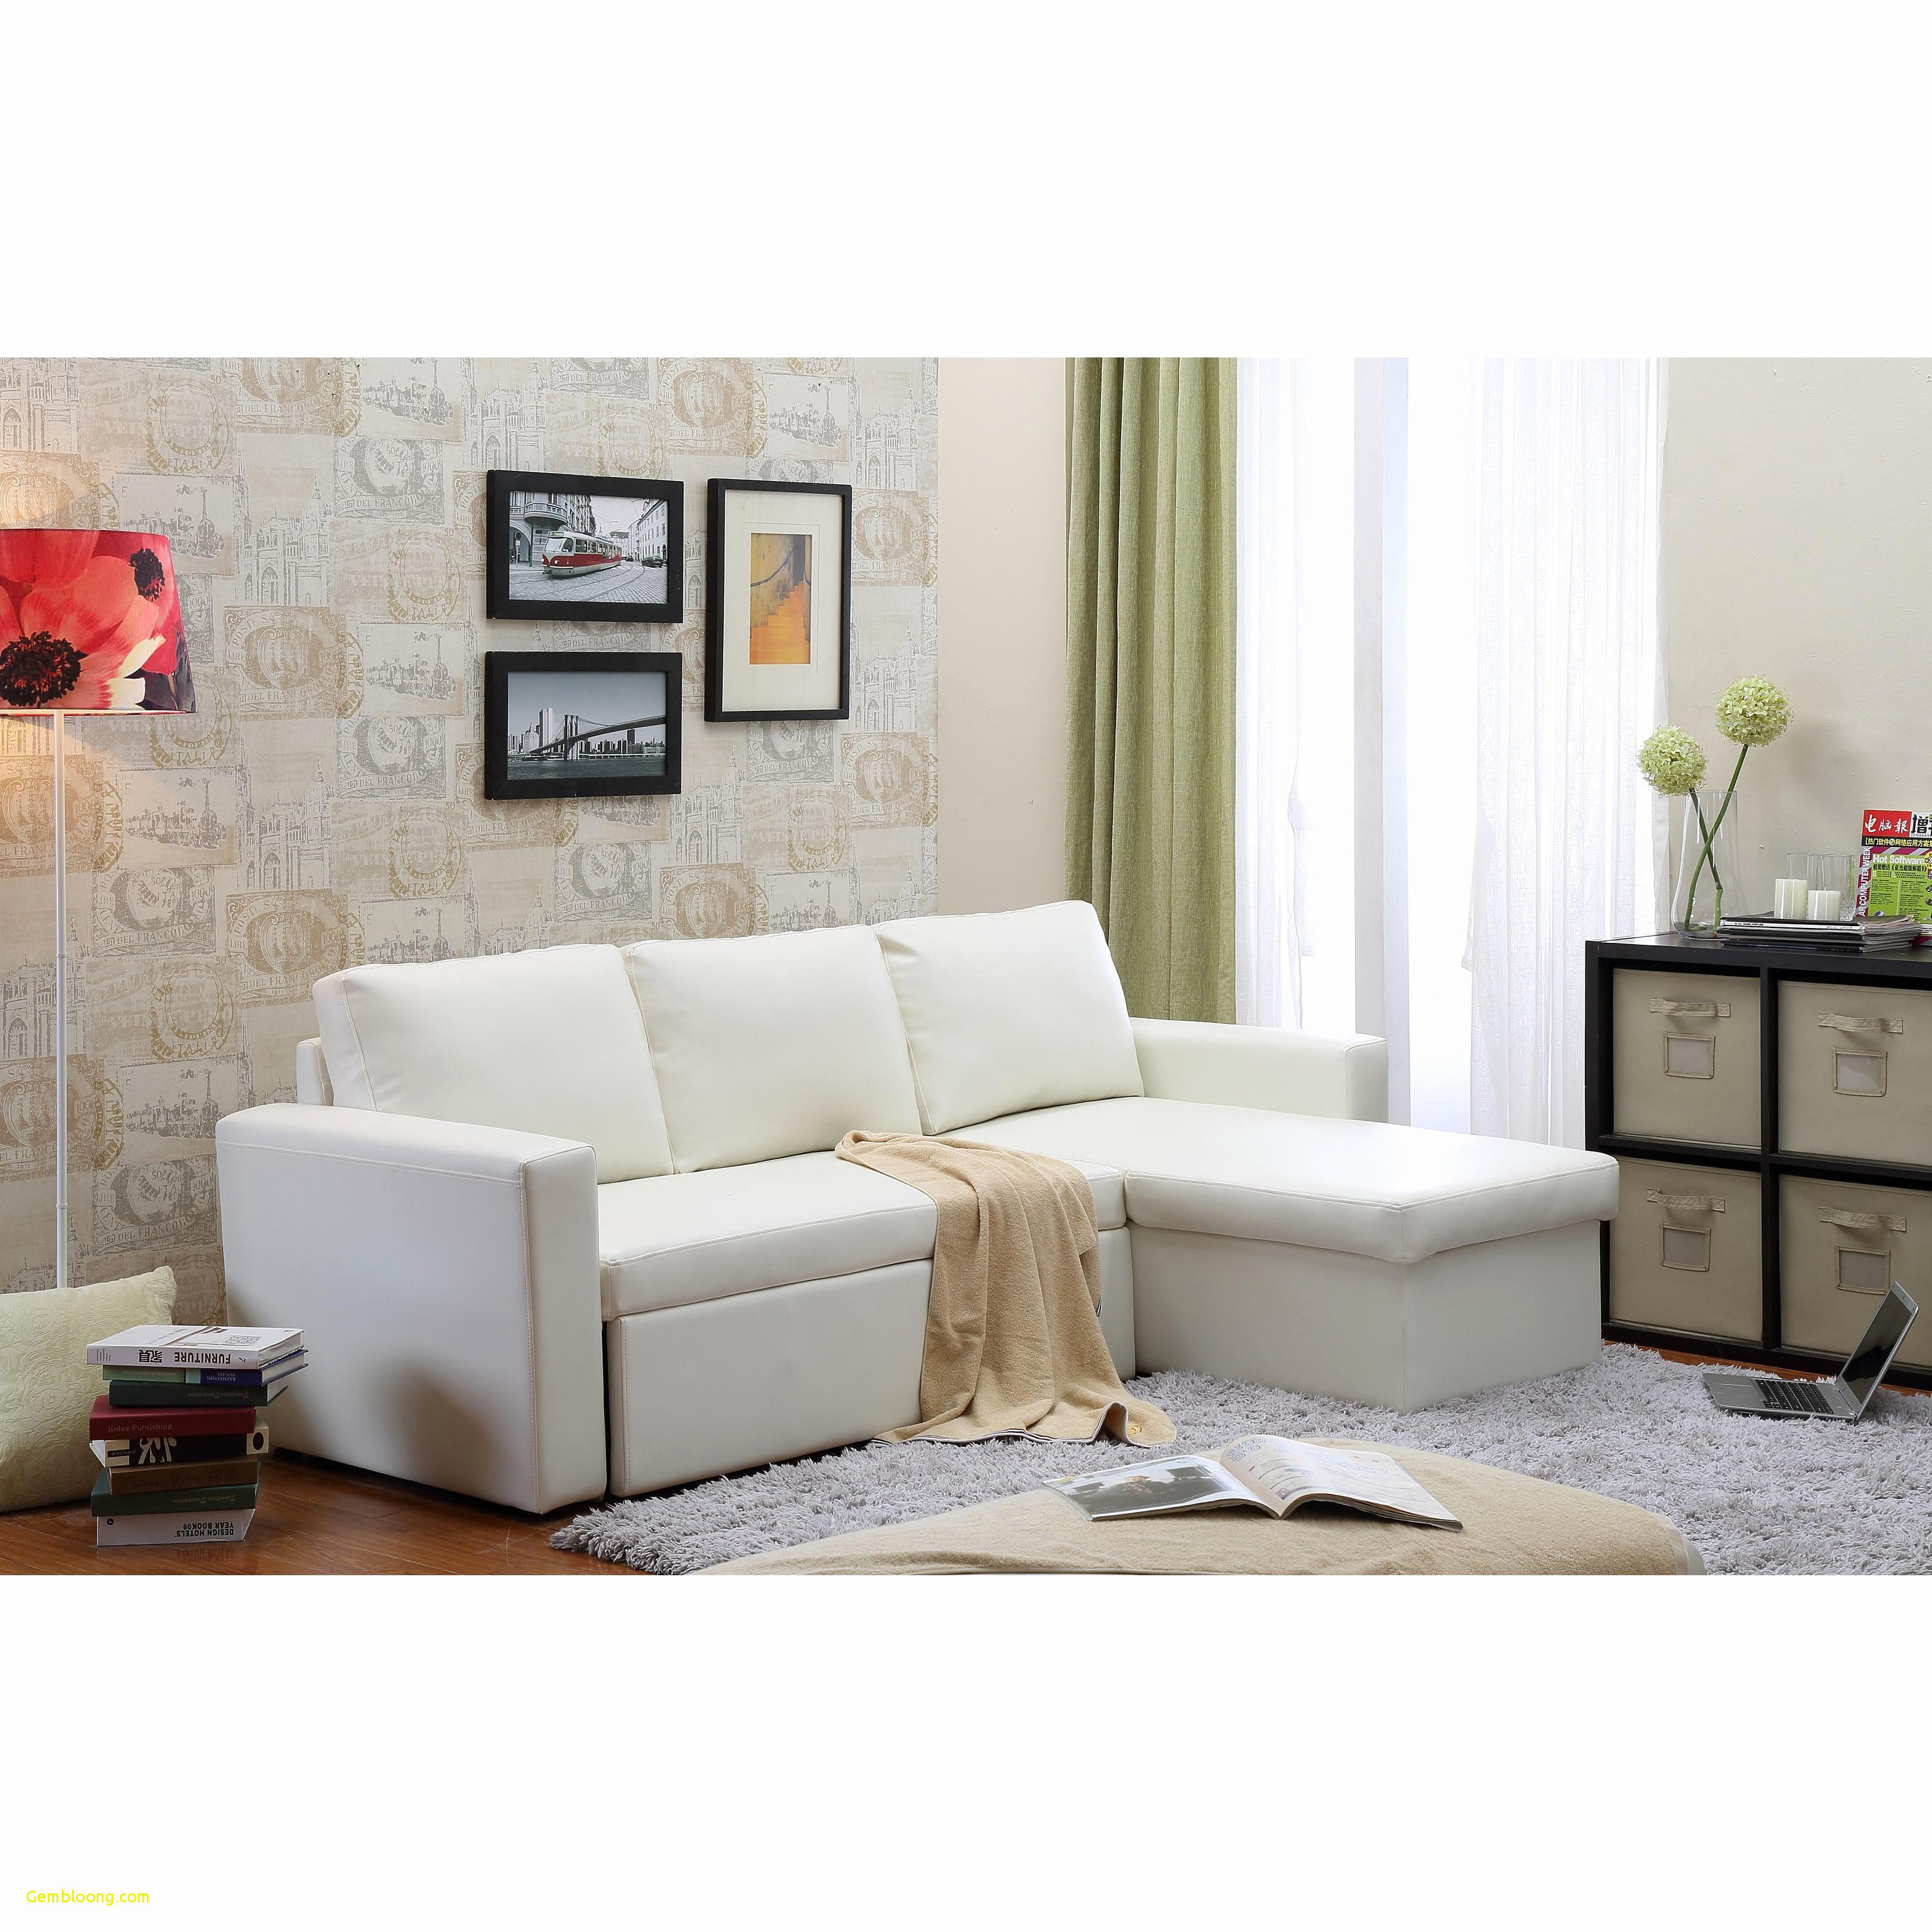 Best ideas about Bed Bath And Beyond Sofa Covers . Save or Pin 30 Beautiful Bed Bath and Beyond sofa Covers Graphics Now.